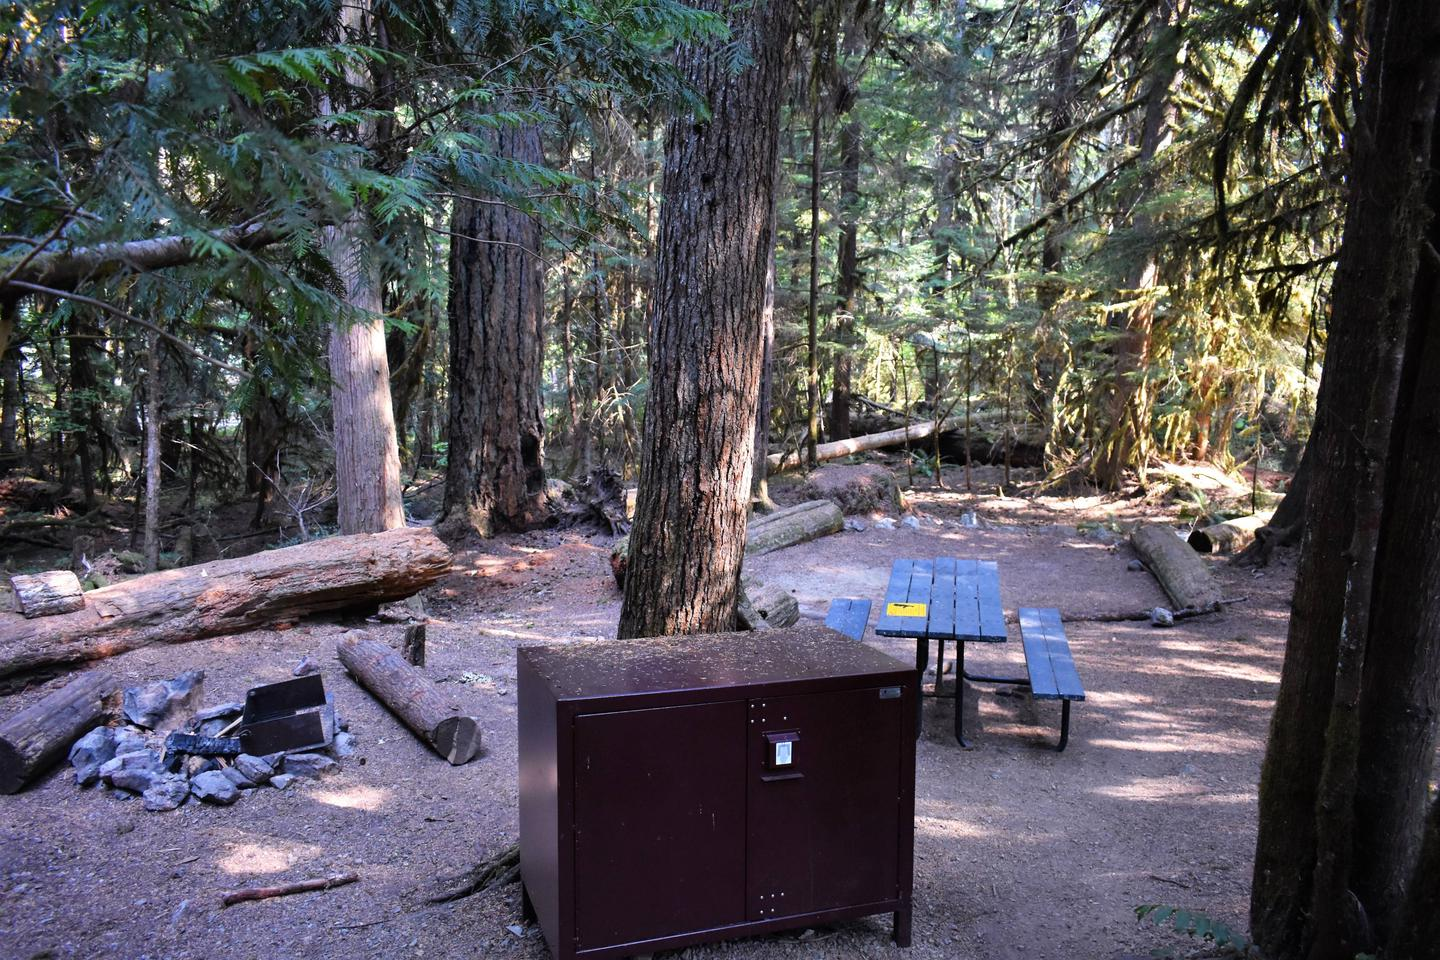 Fire ring, food storage locker, picnic table, and tent areaView of campsite